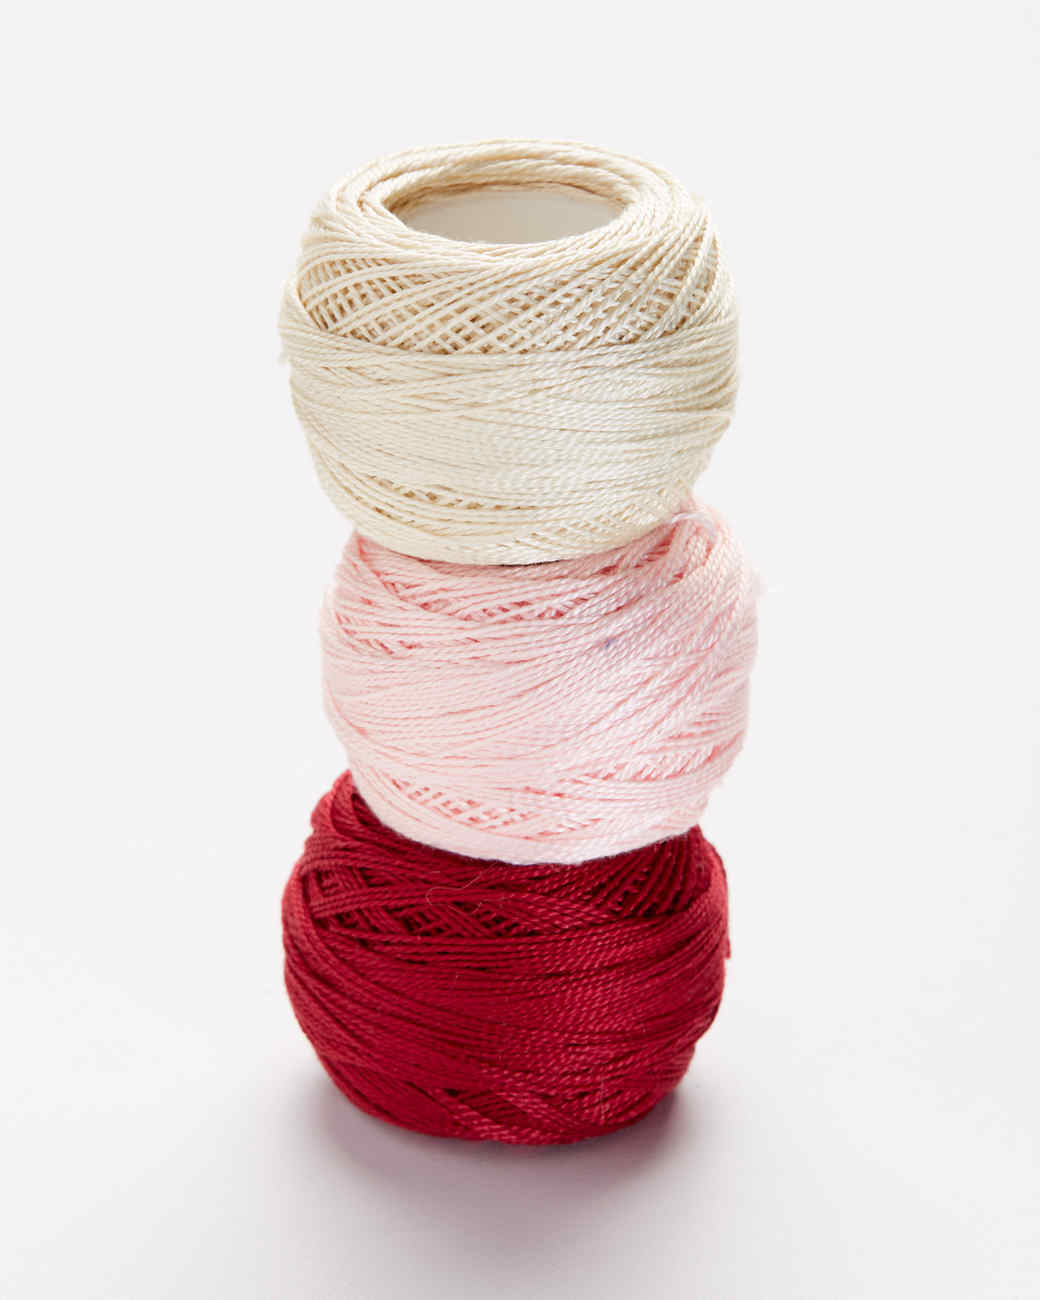 three types of cotton embroidery thread stacked